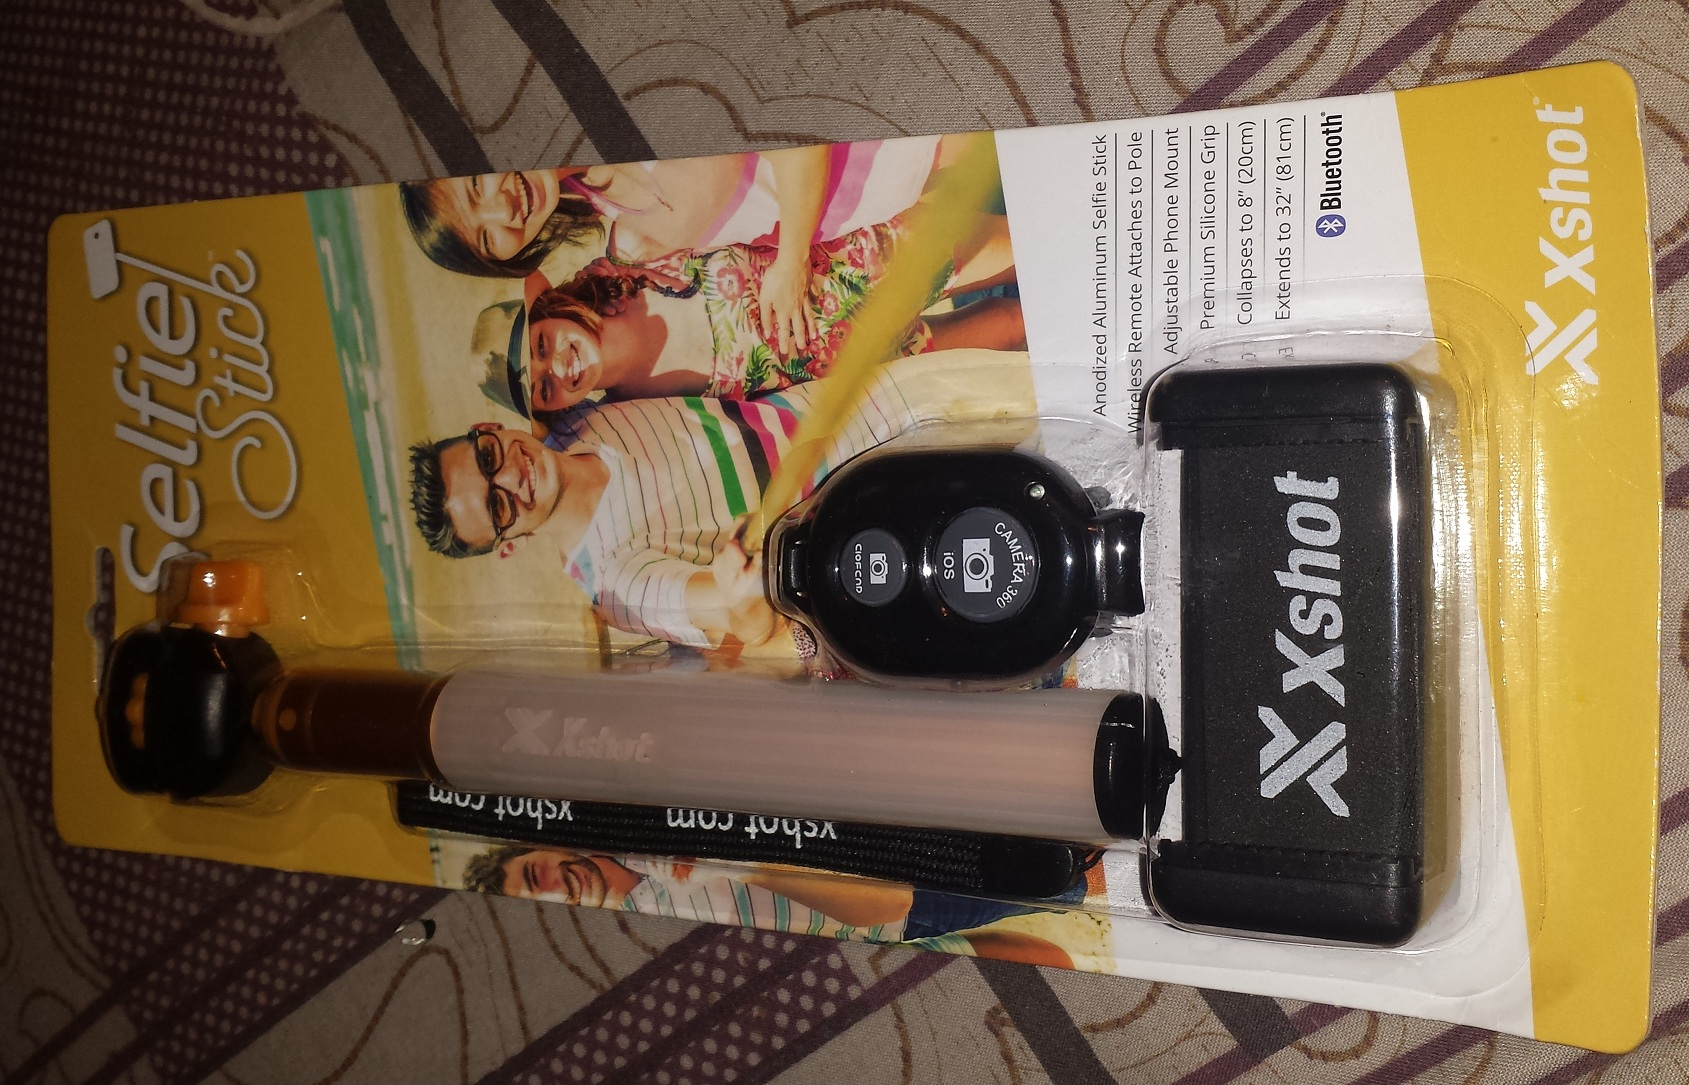 packed selfie stick by xshot